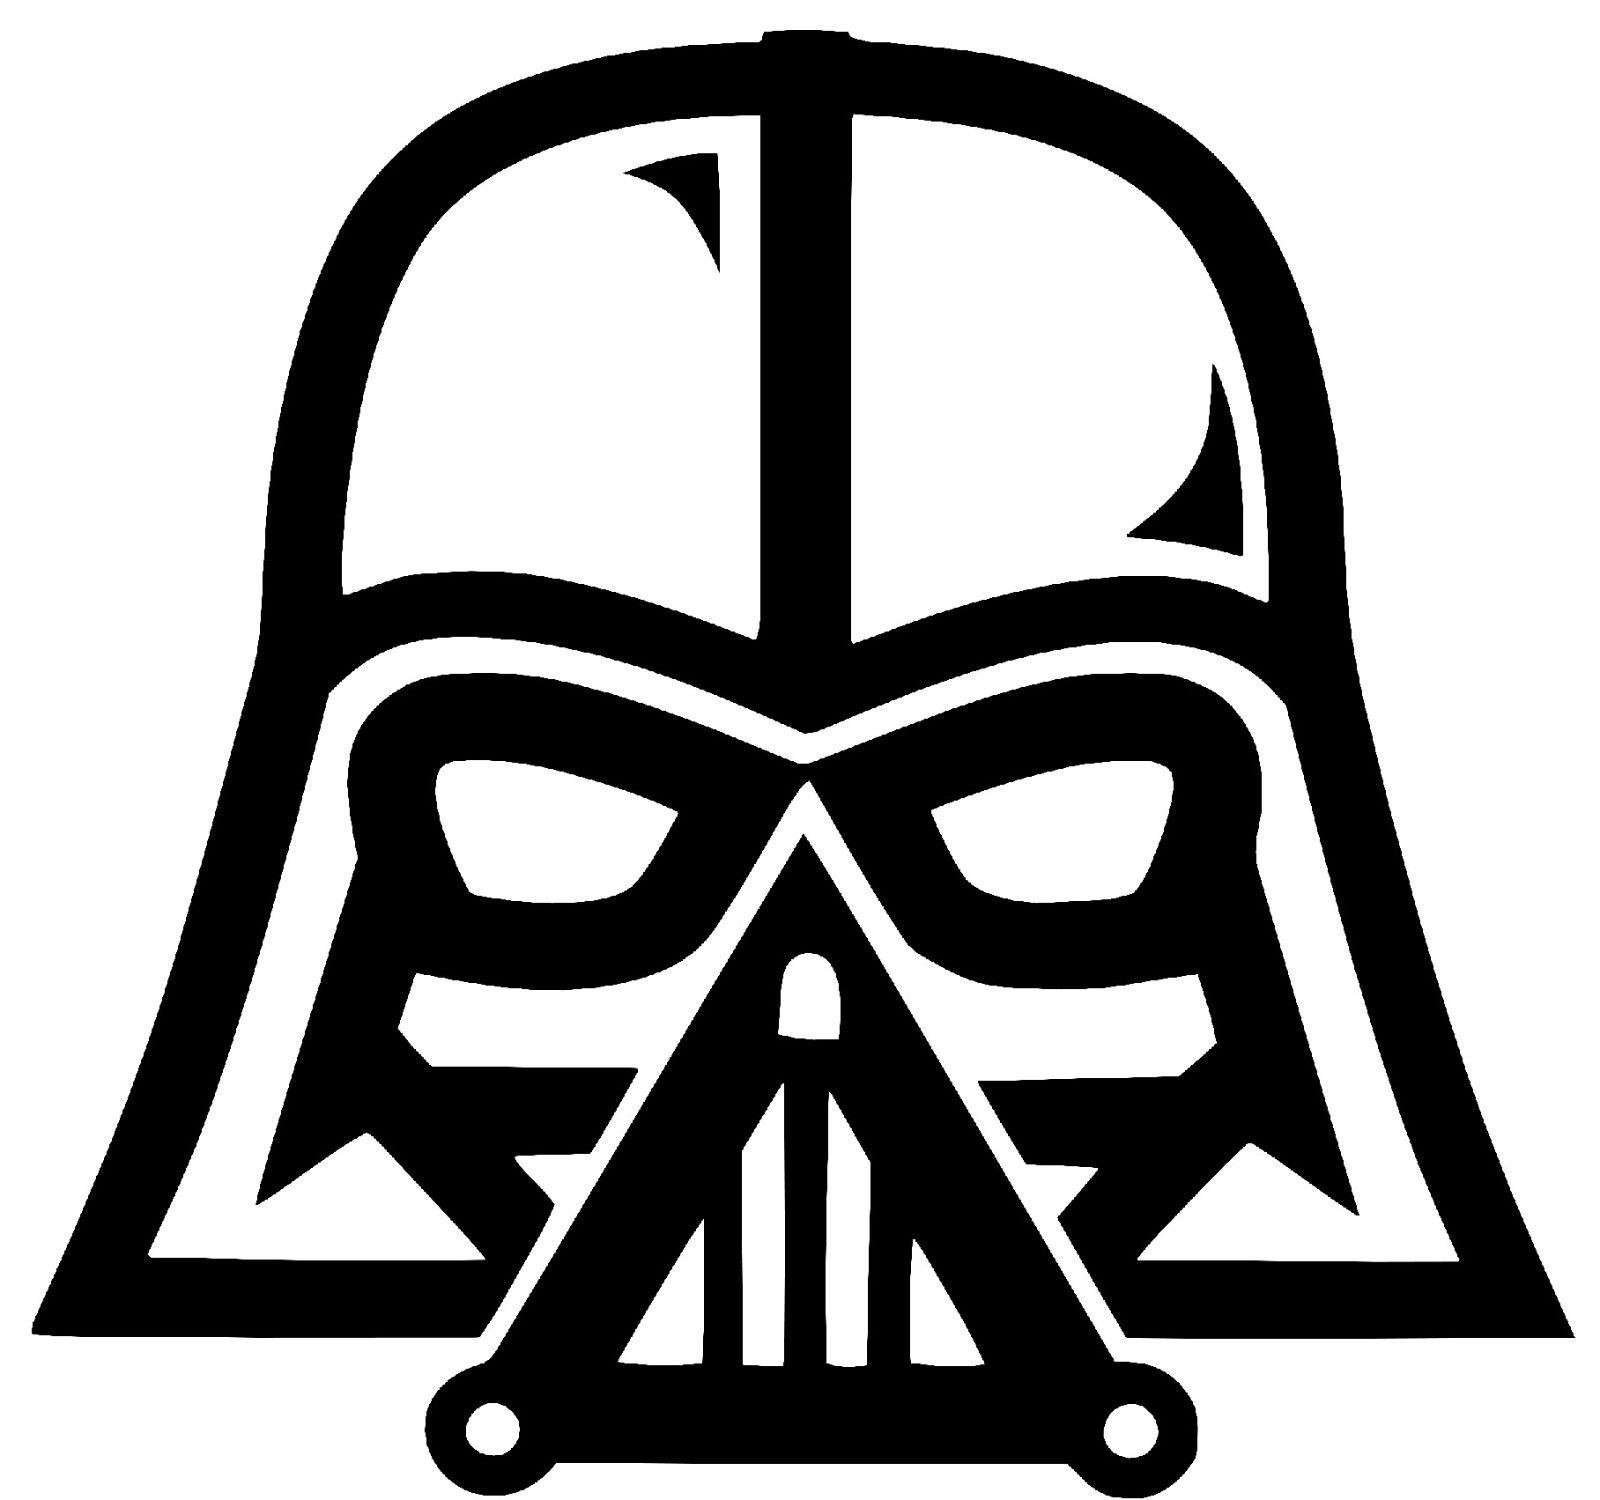 Darth vader clipart. Star wars vinyl fair